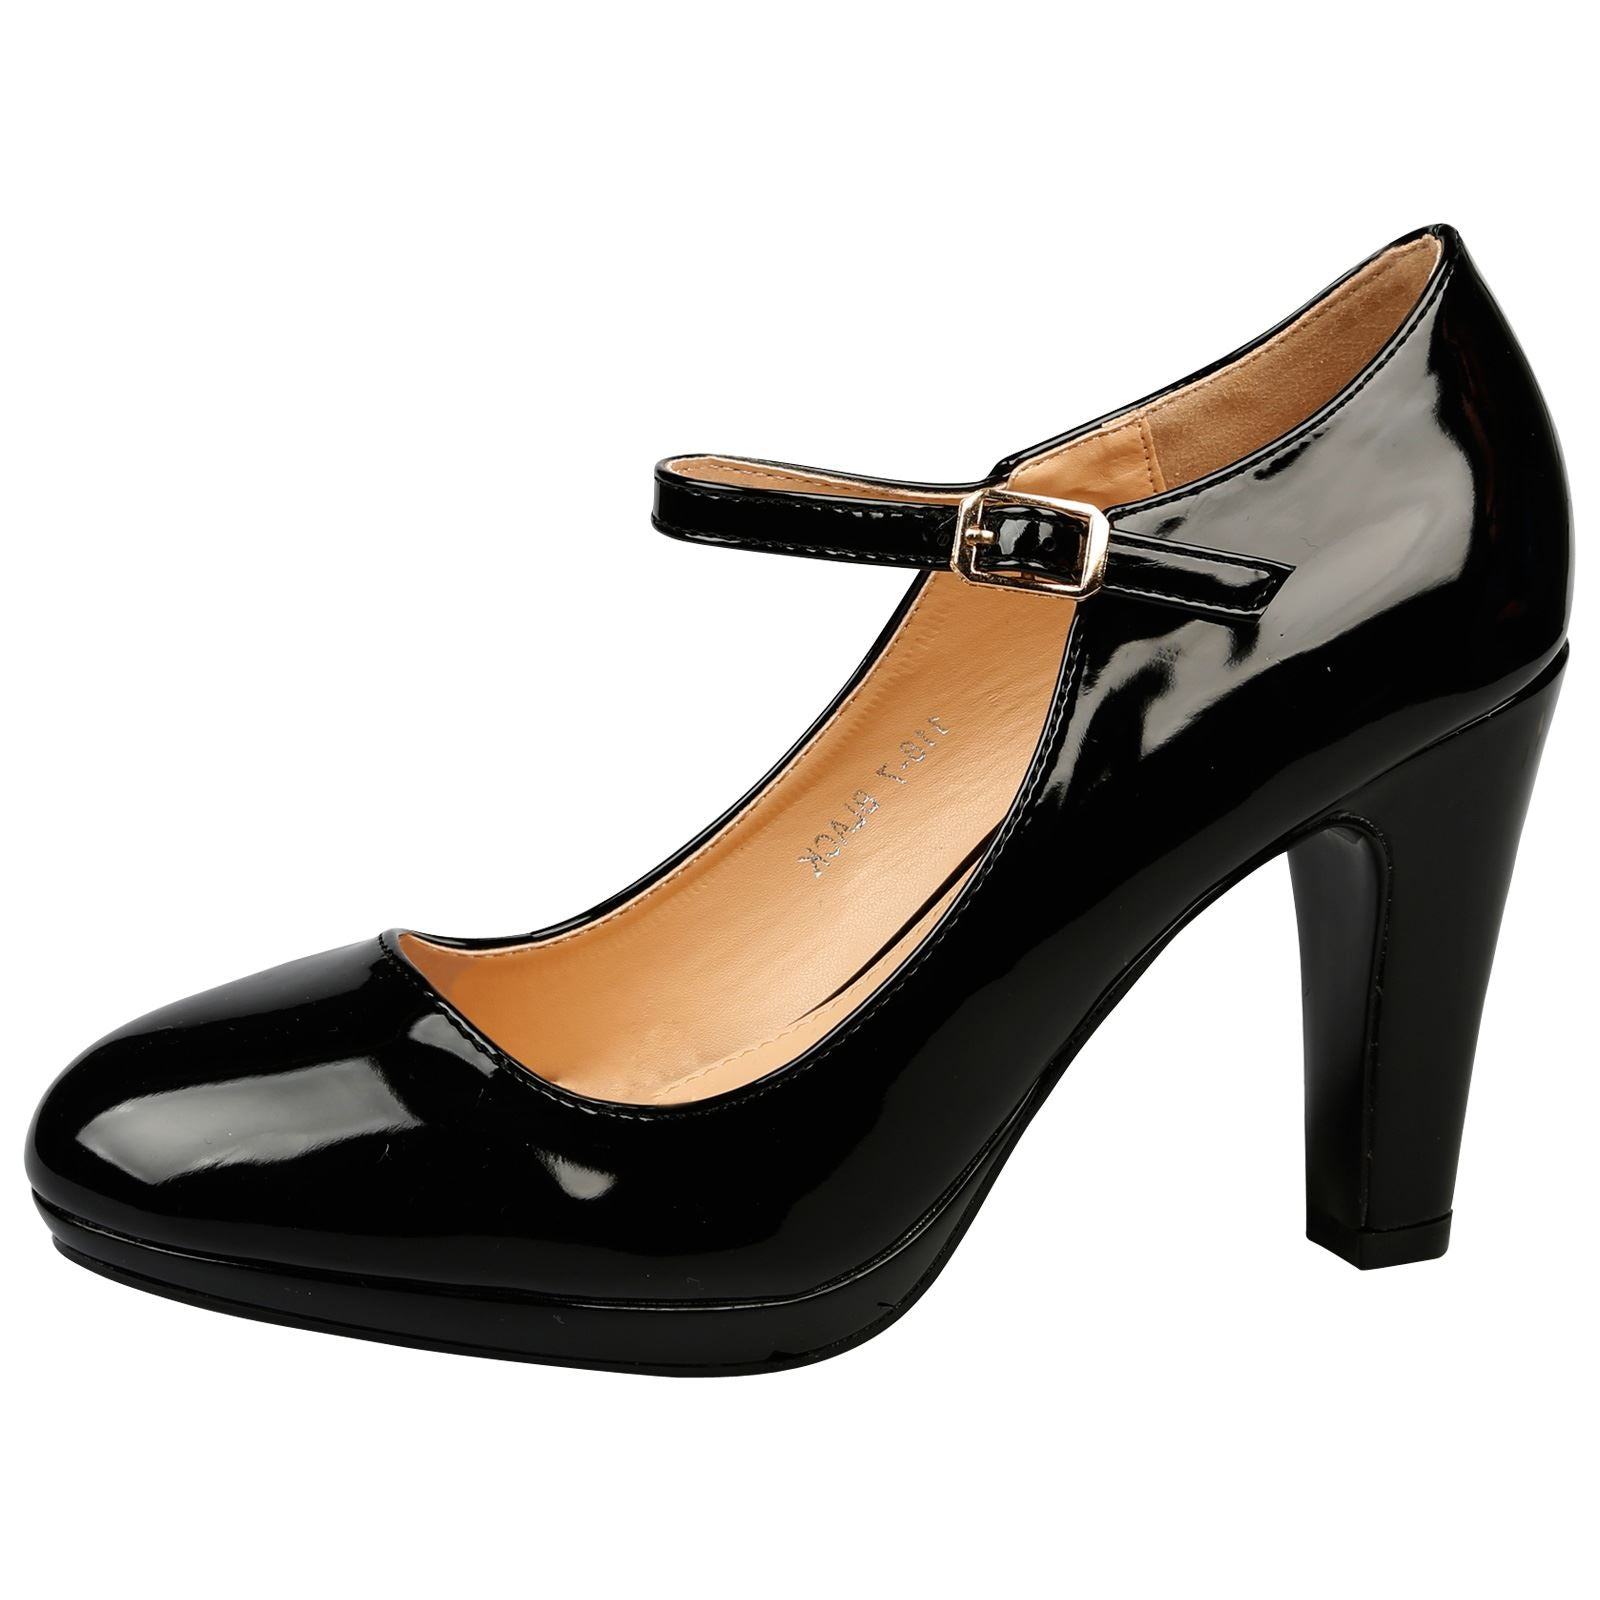 Emmeline Platform Mary Janes in Black Patent